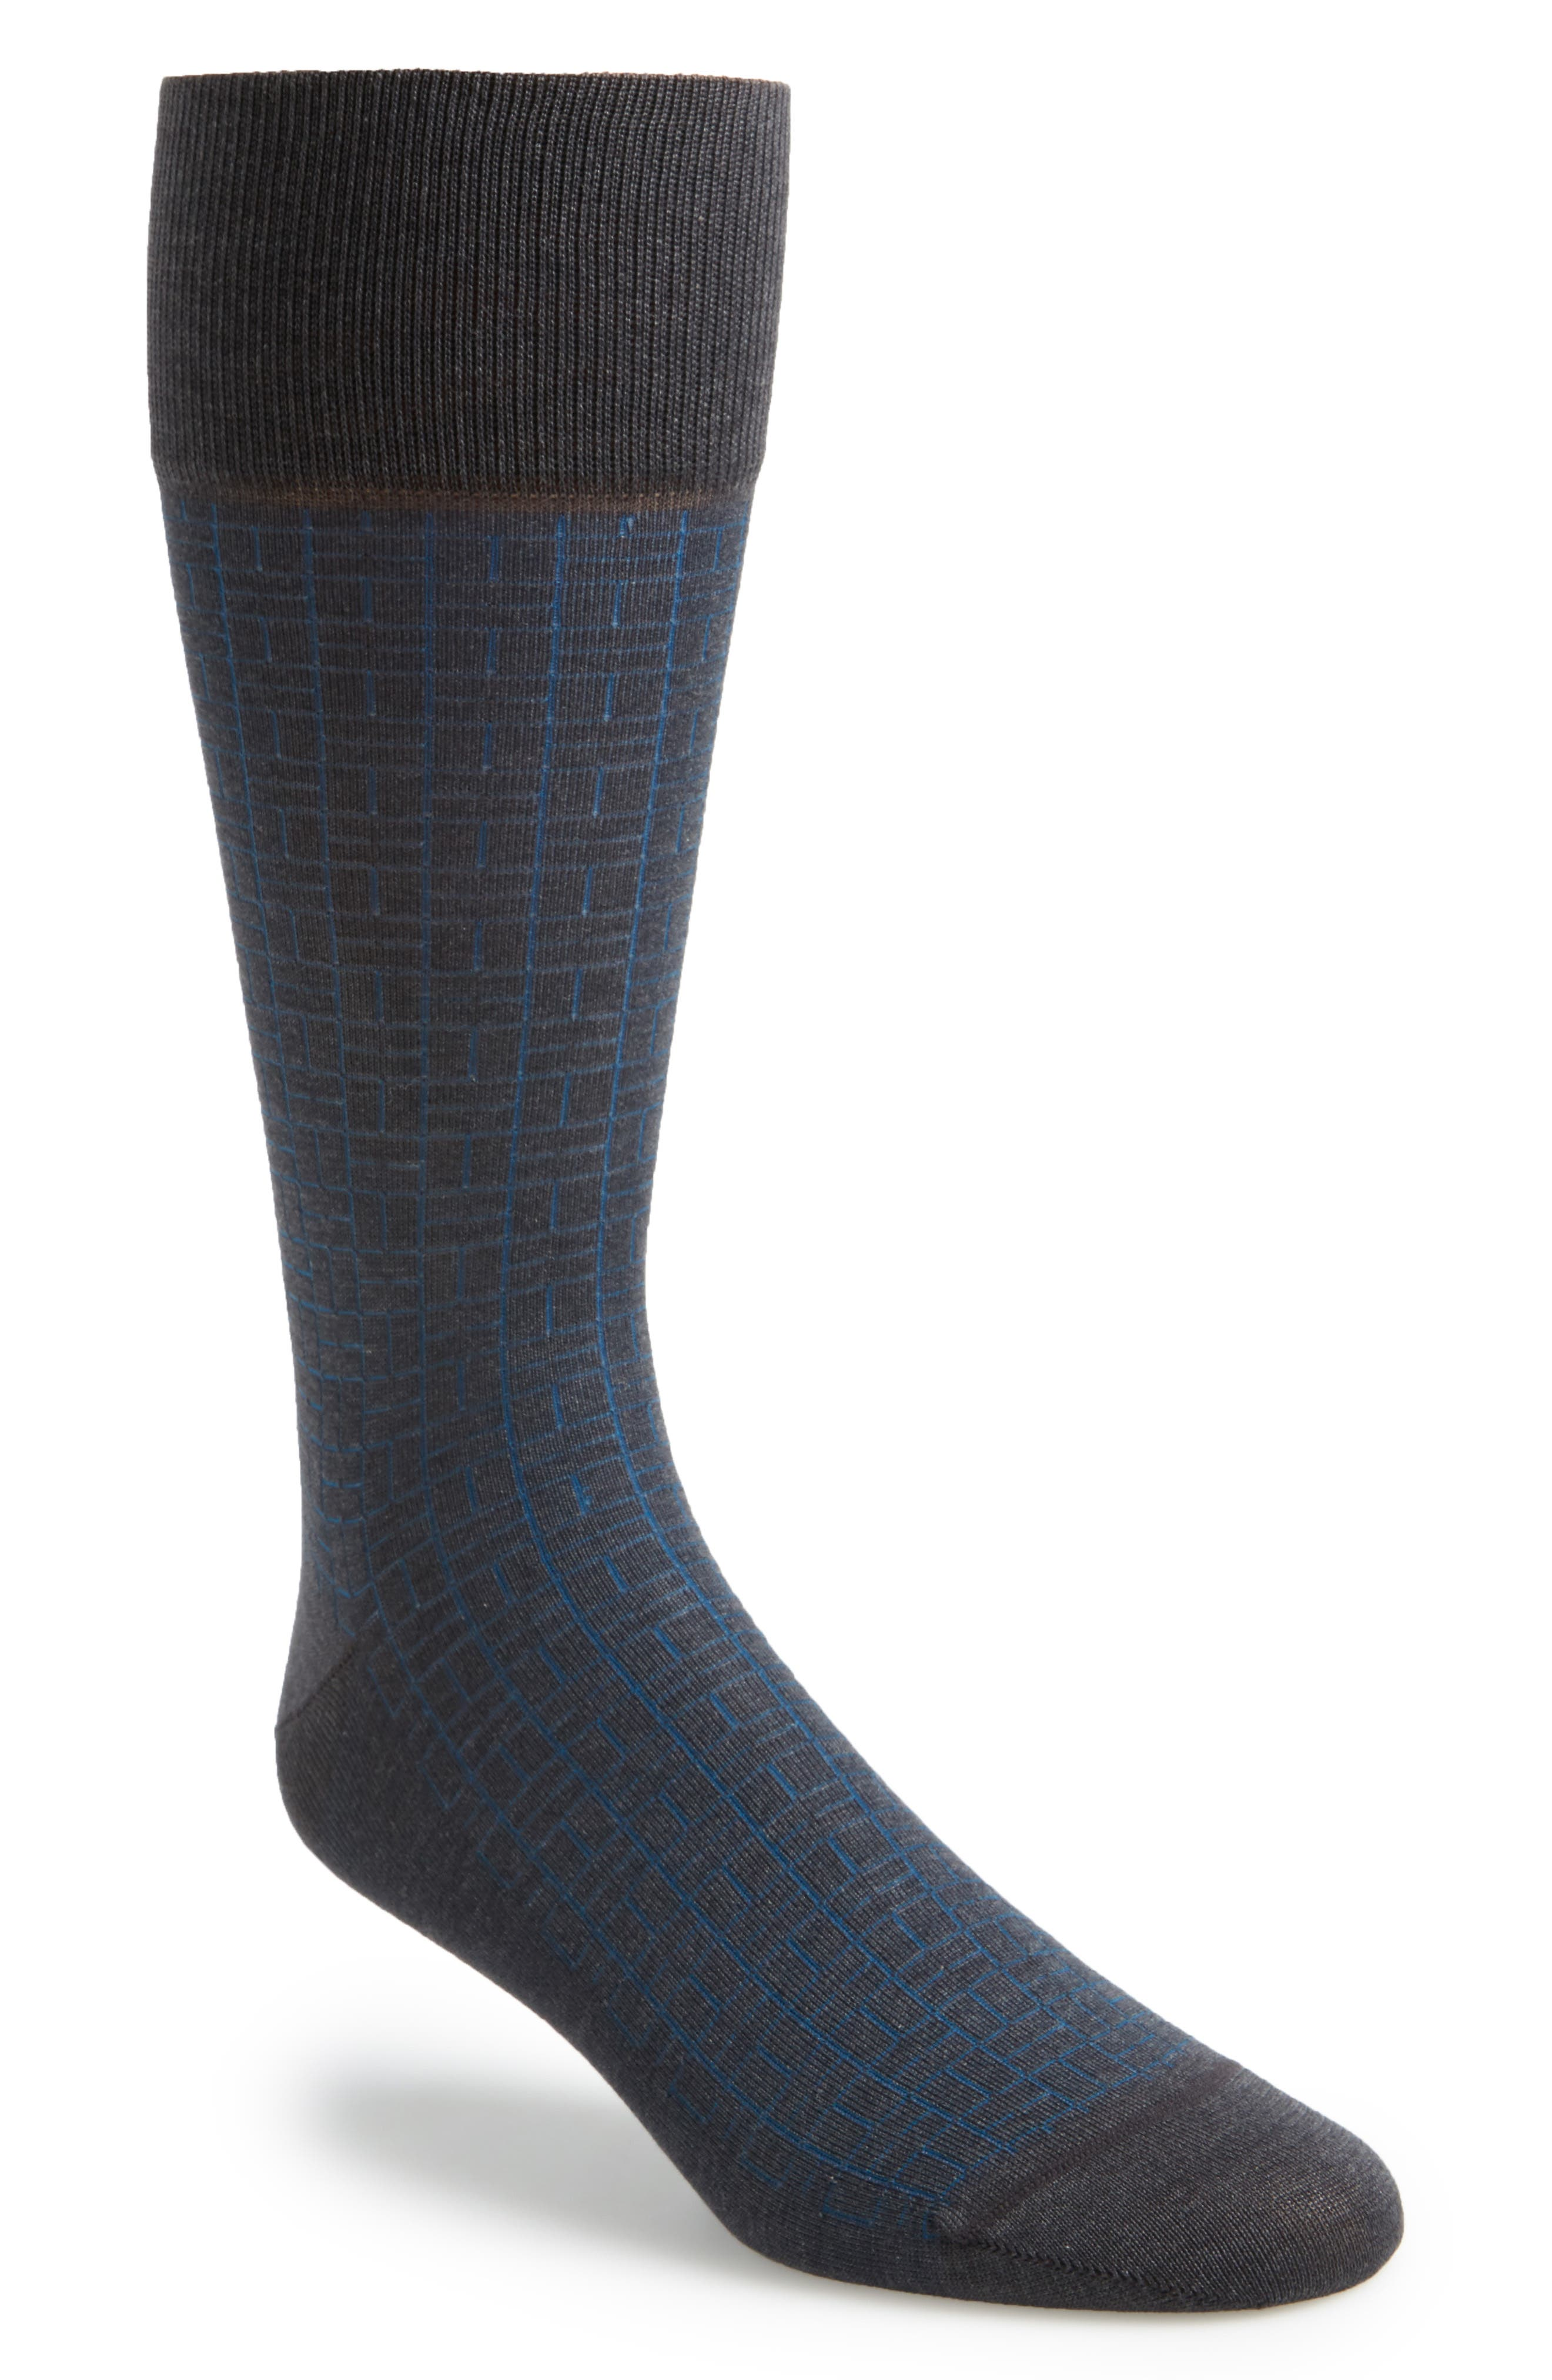 Domino Socks,                             Main thumbnail 1, color,                             Charcoal Heather